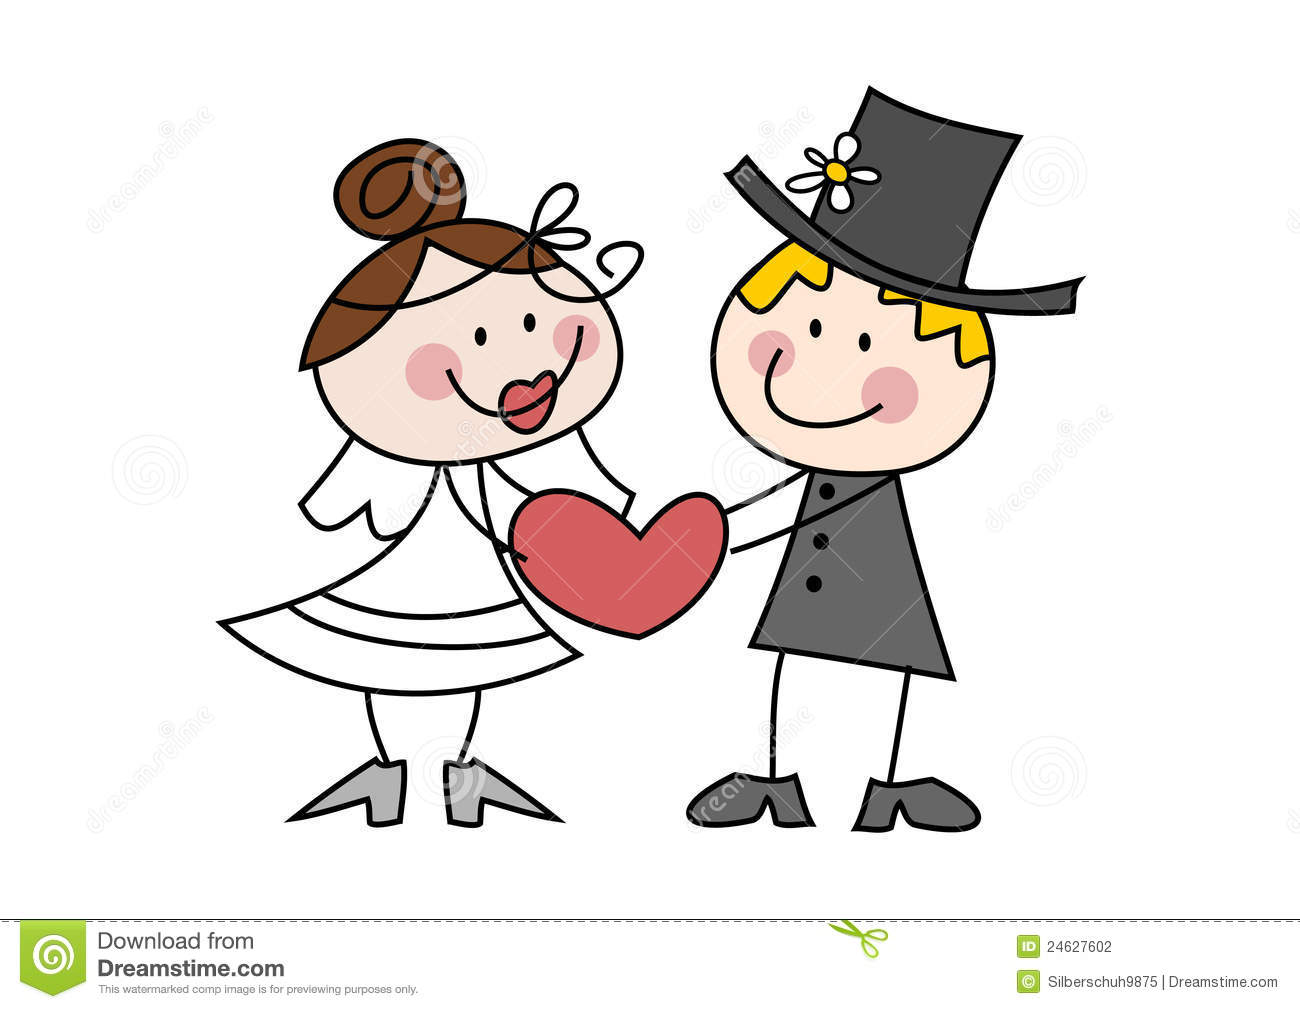 Cute Cartoon Wedding Couple Stock Vector Illustration Of Husband Dress 24627602